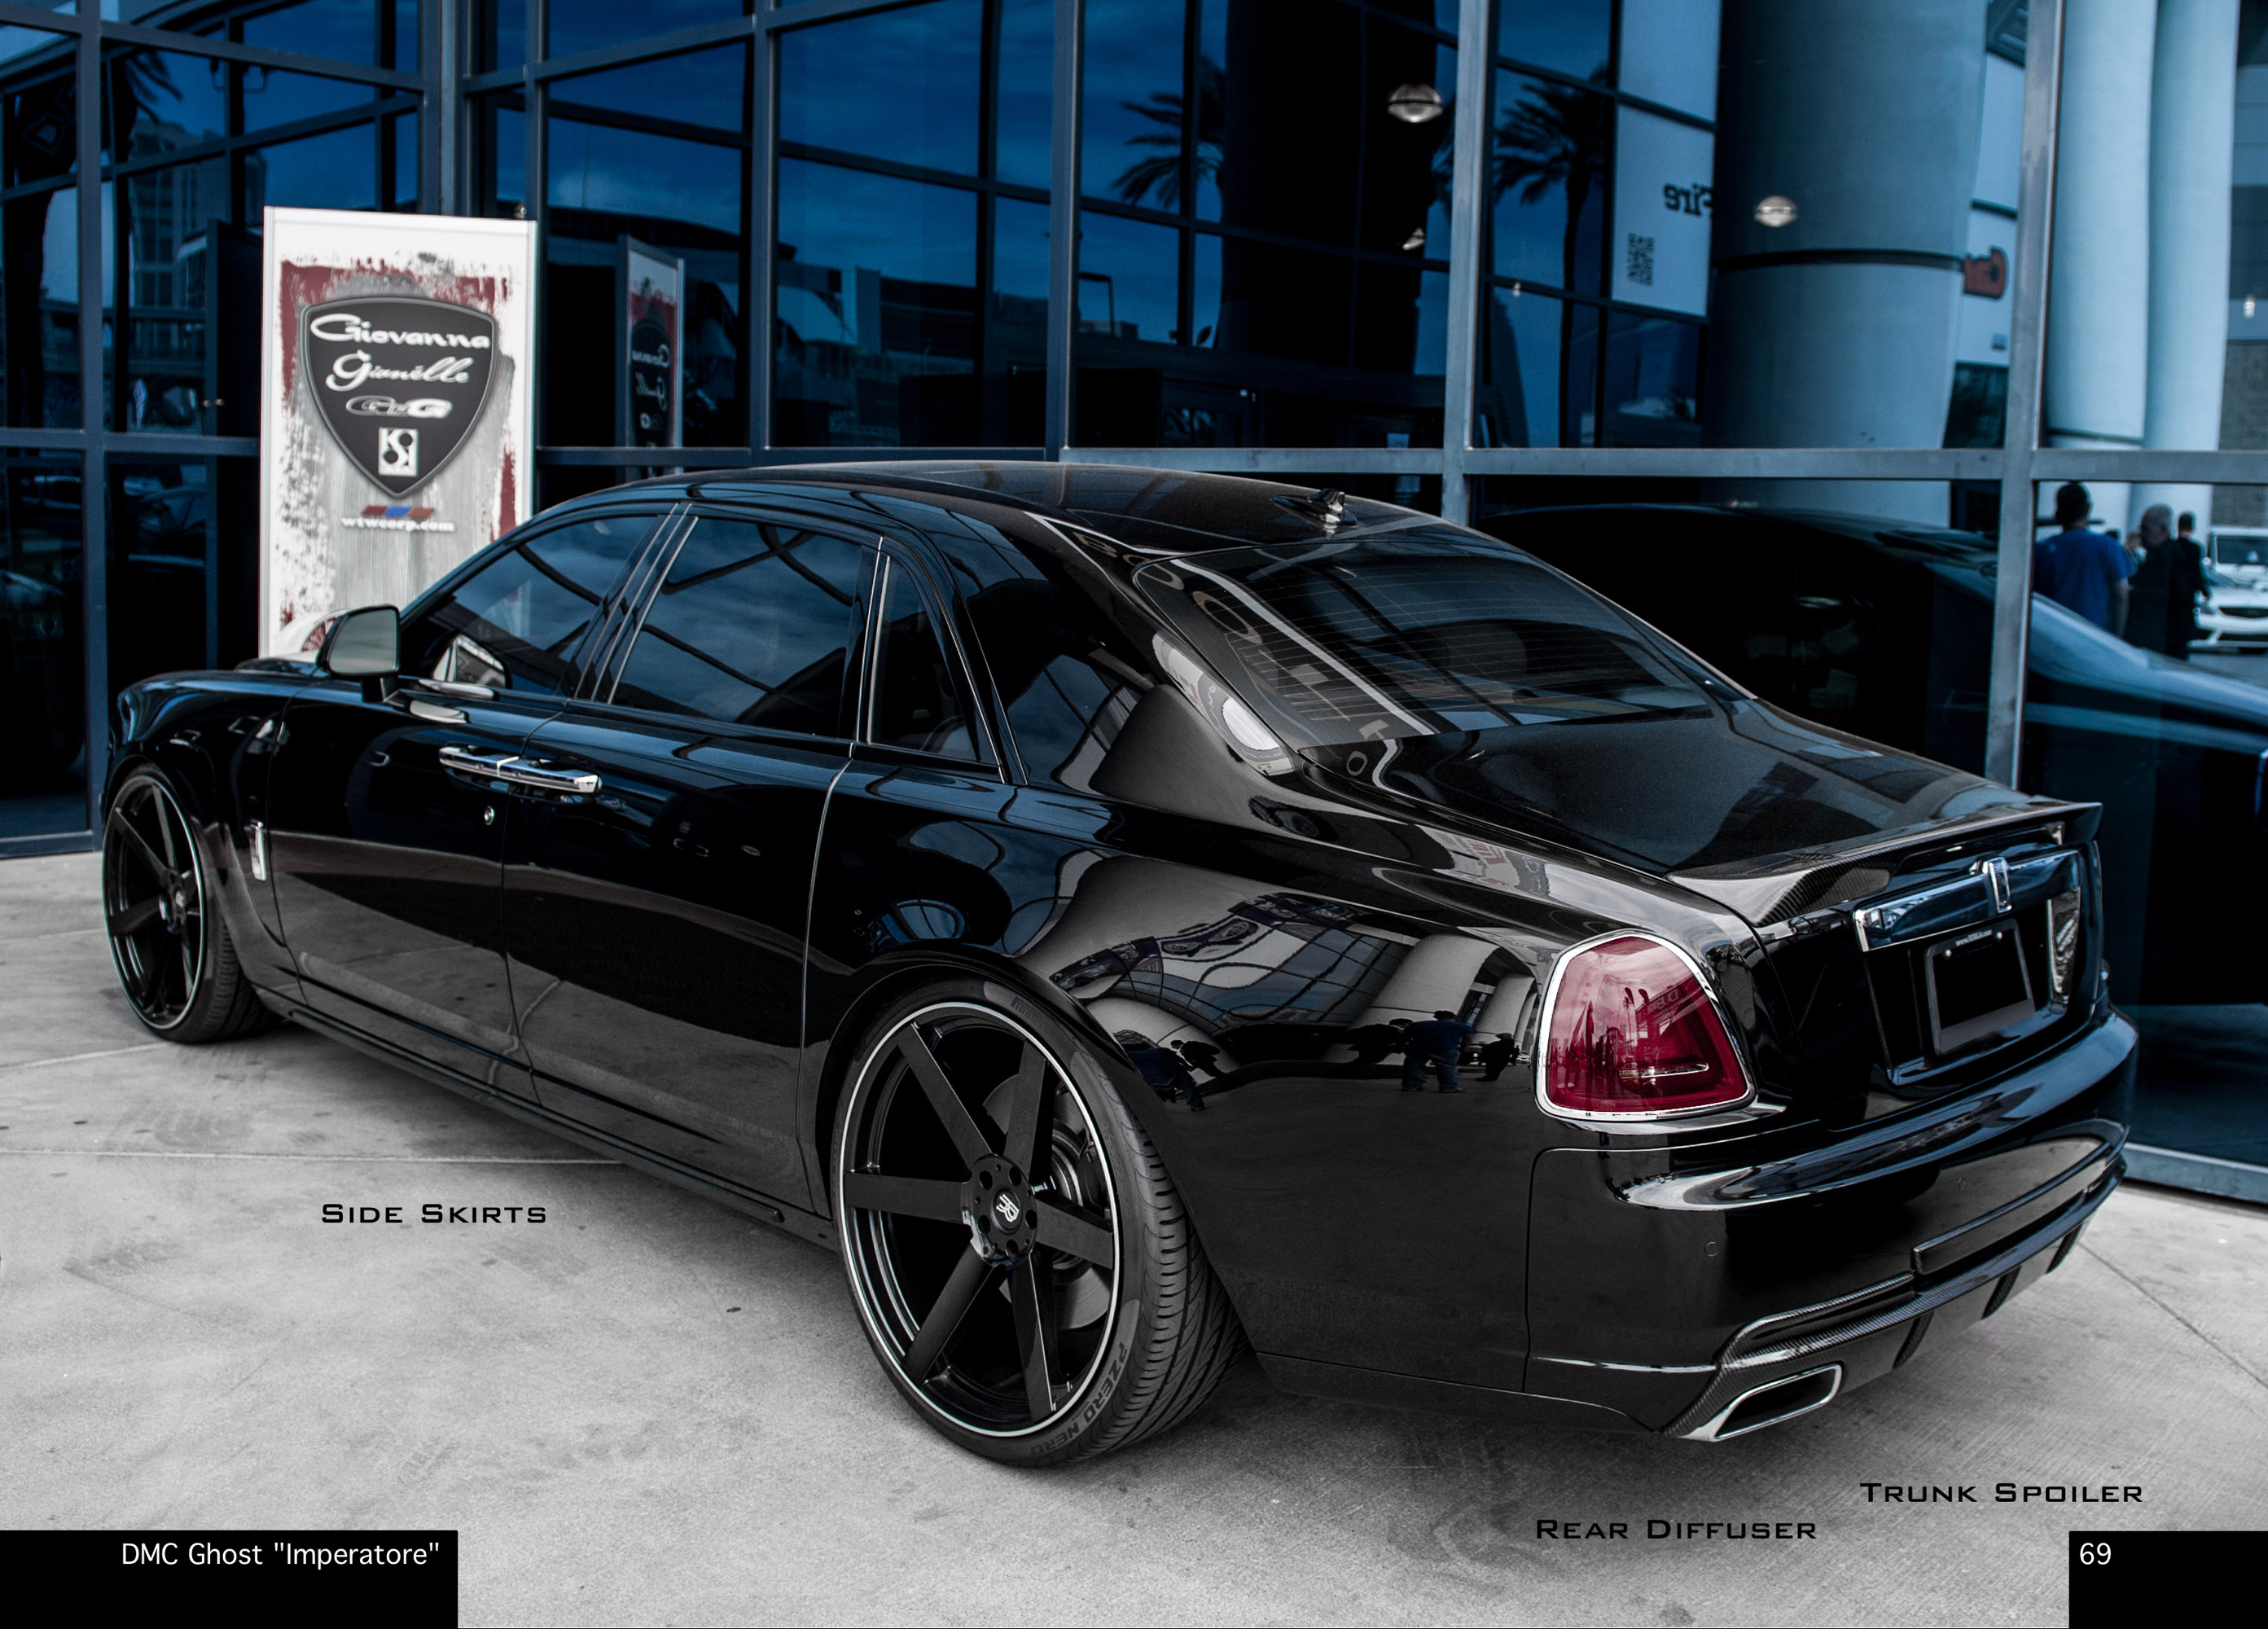 Dmc Rolls Royce Ghost Imperatore Picture 92126